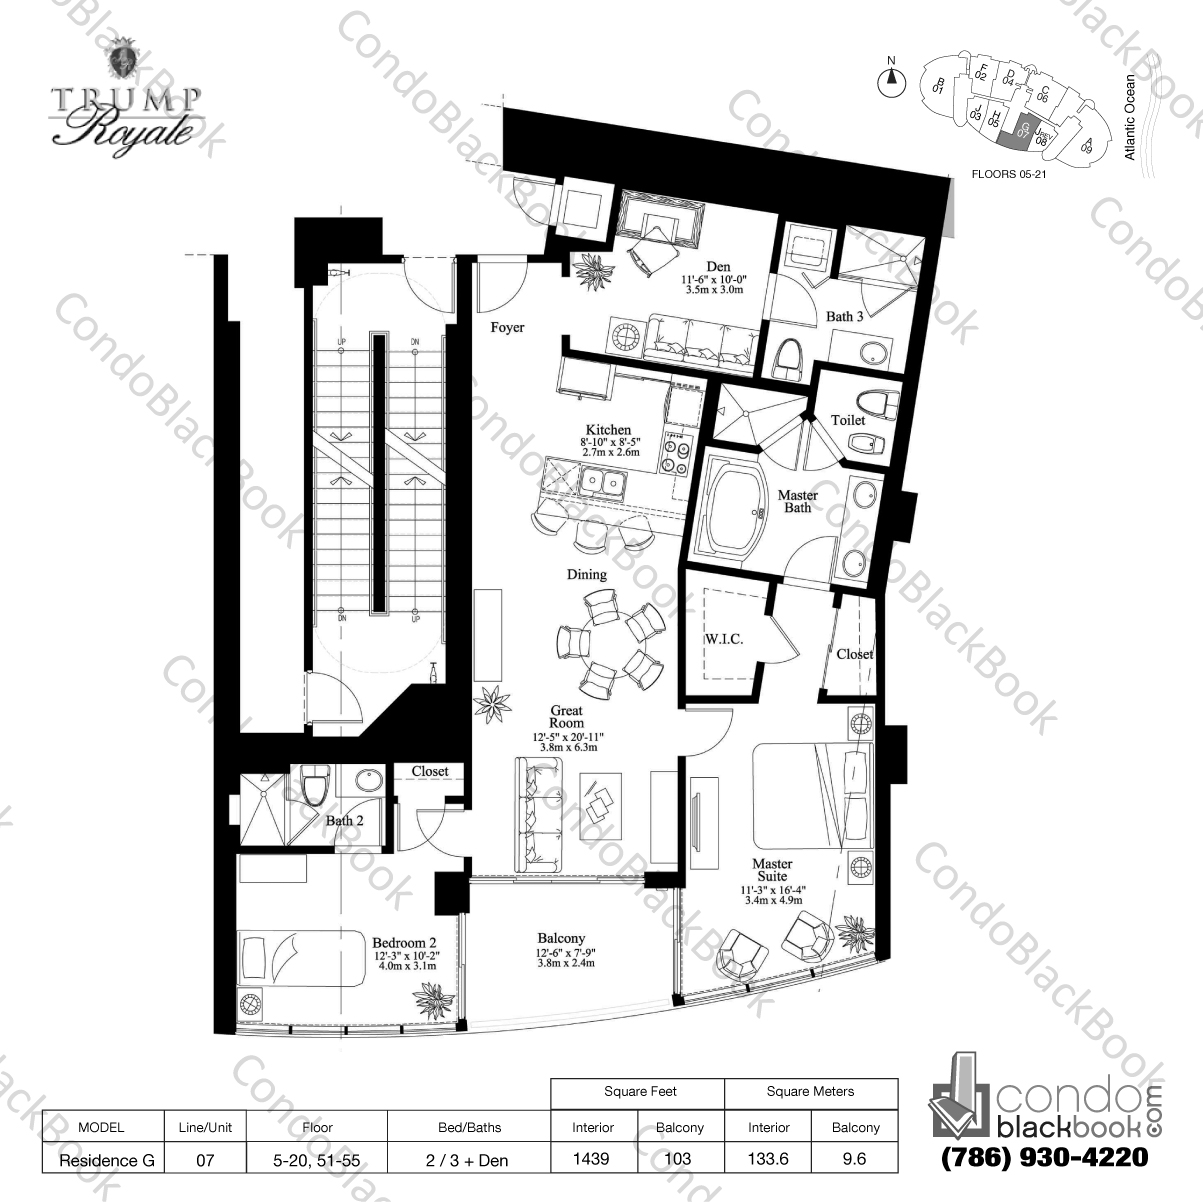 Floor plan for Trump Royale Sunny Isles Beach, model Residence G, line 07, 2 / 3 + Den bedrooms, 1439 sq ft